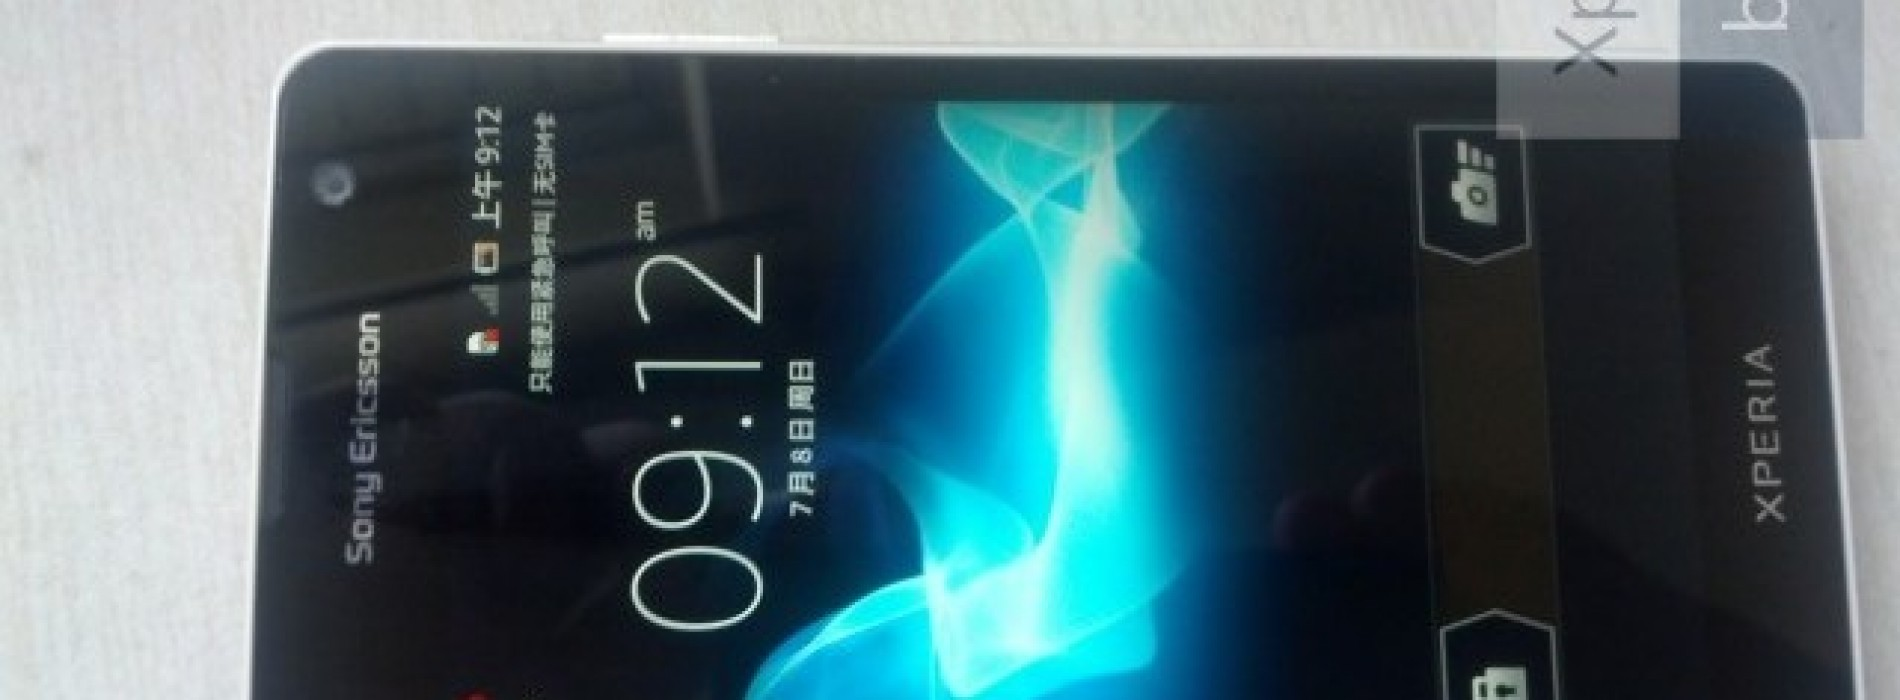 International Sony Xperia GX leaked in pics